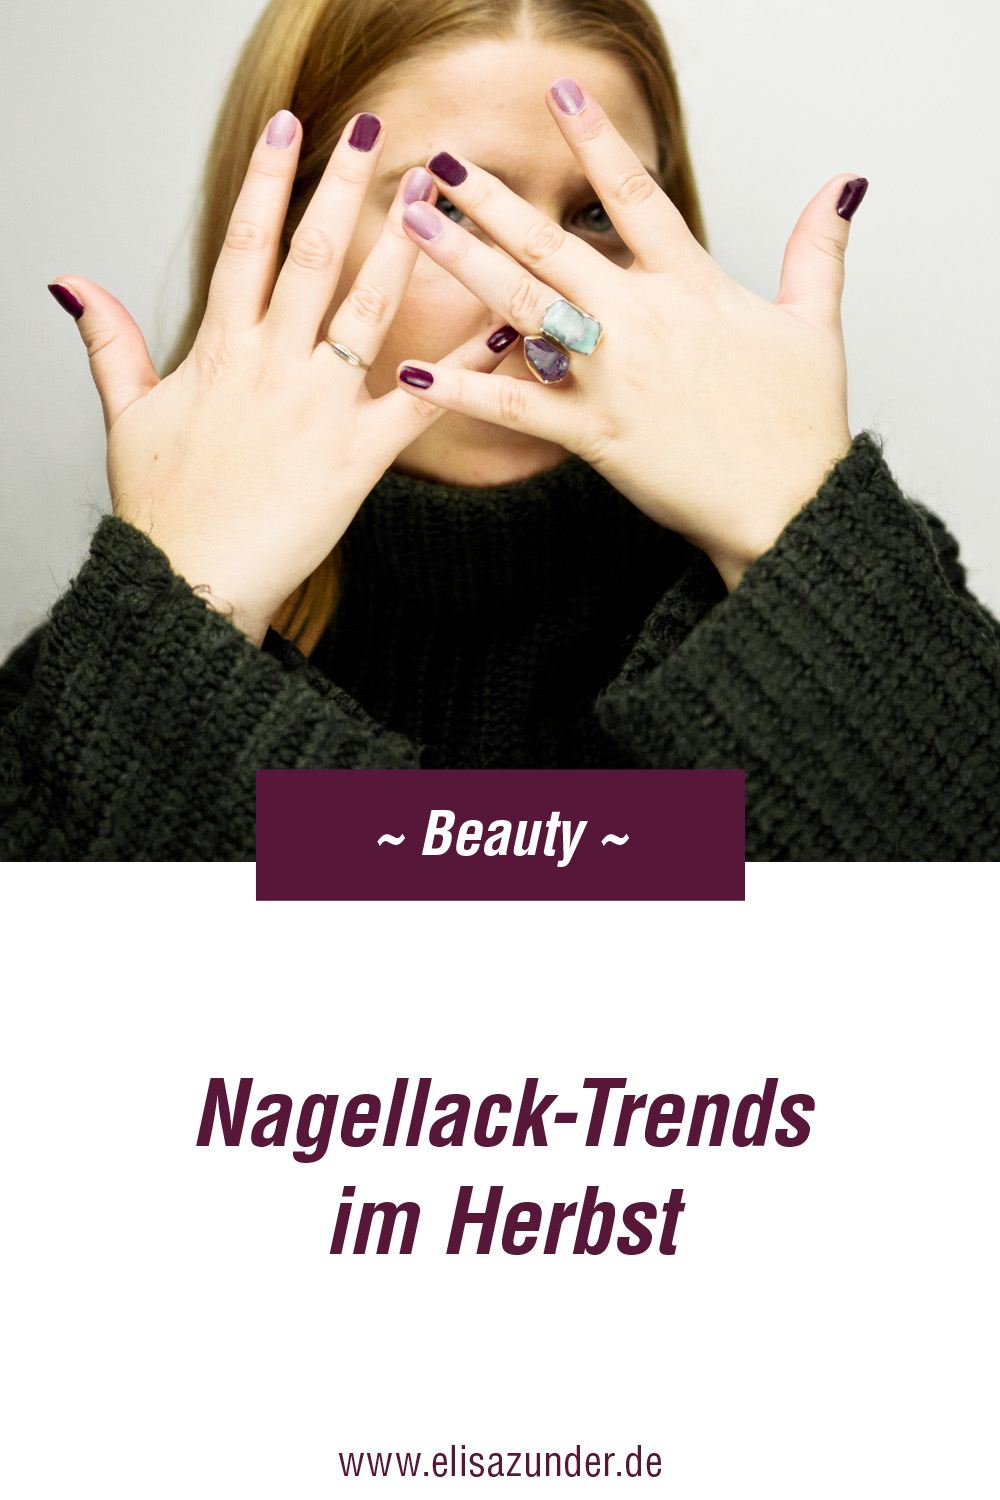 Nagellack-Trends im Herbst, Beauty, 8 Nagellack-Trends, Nagellack, Nagellack-Trends, schöne Fingernägel, Beauty Tipps, Beauty Trends, Beauty Trends im Herbst, Nagellack shoppen